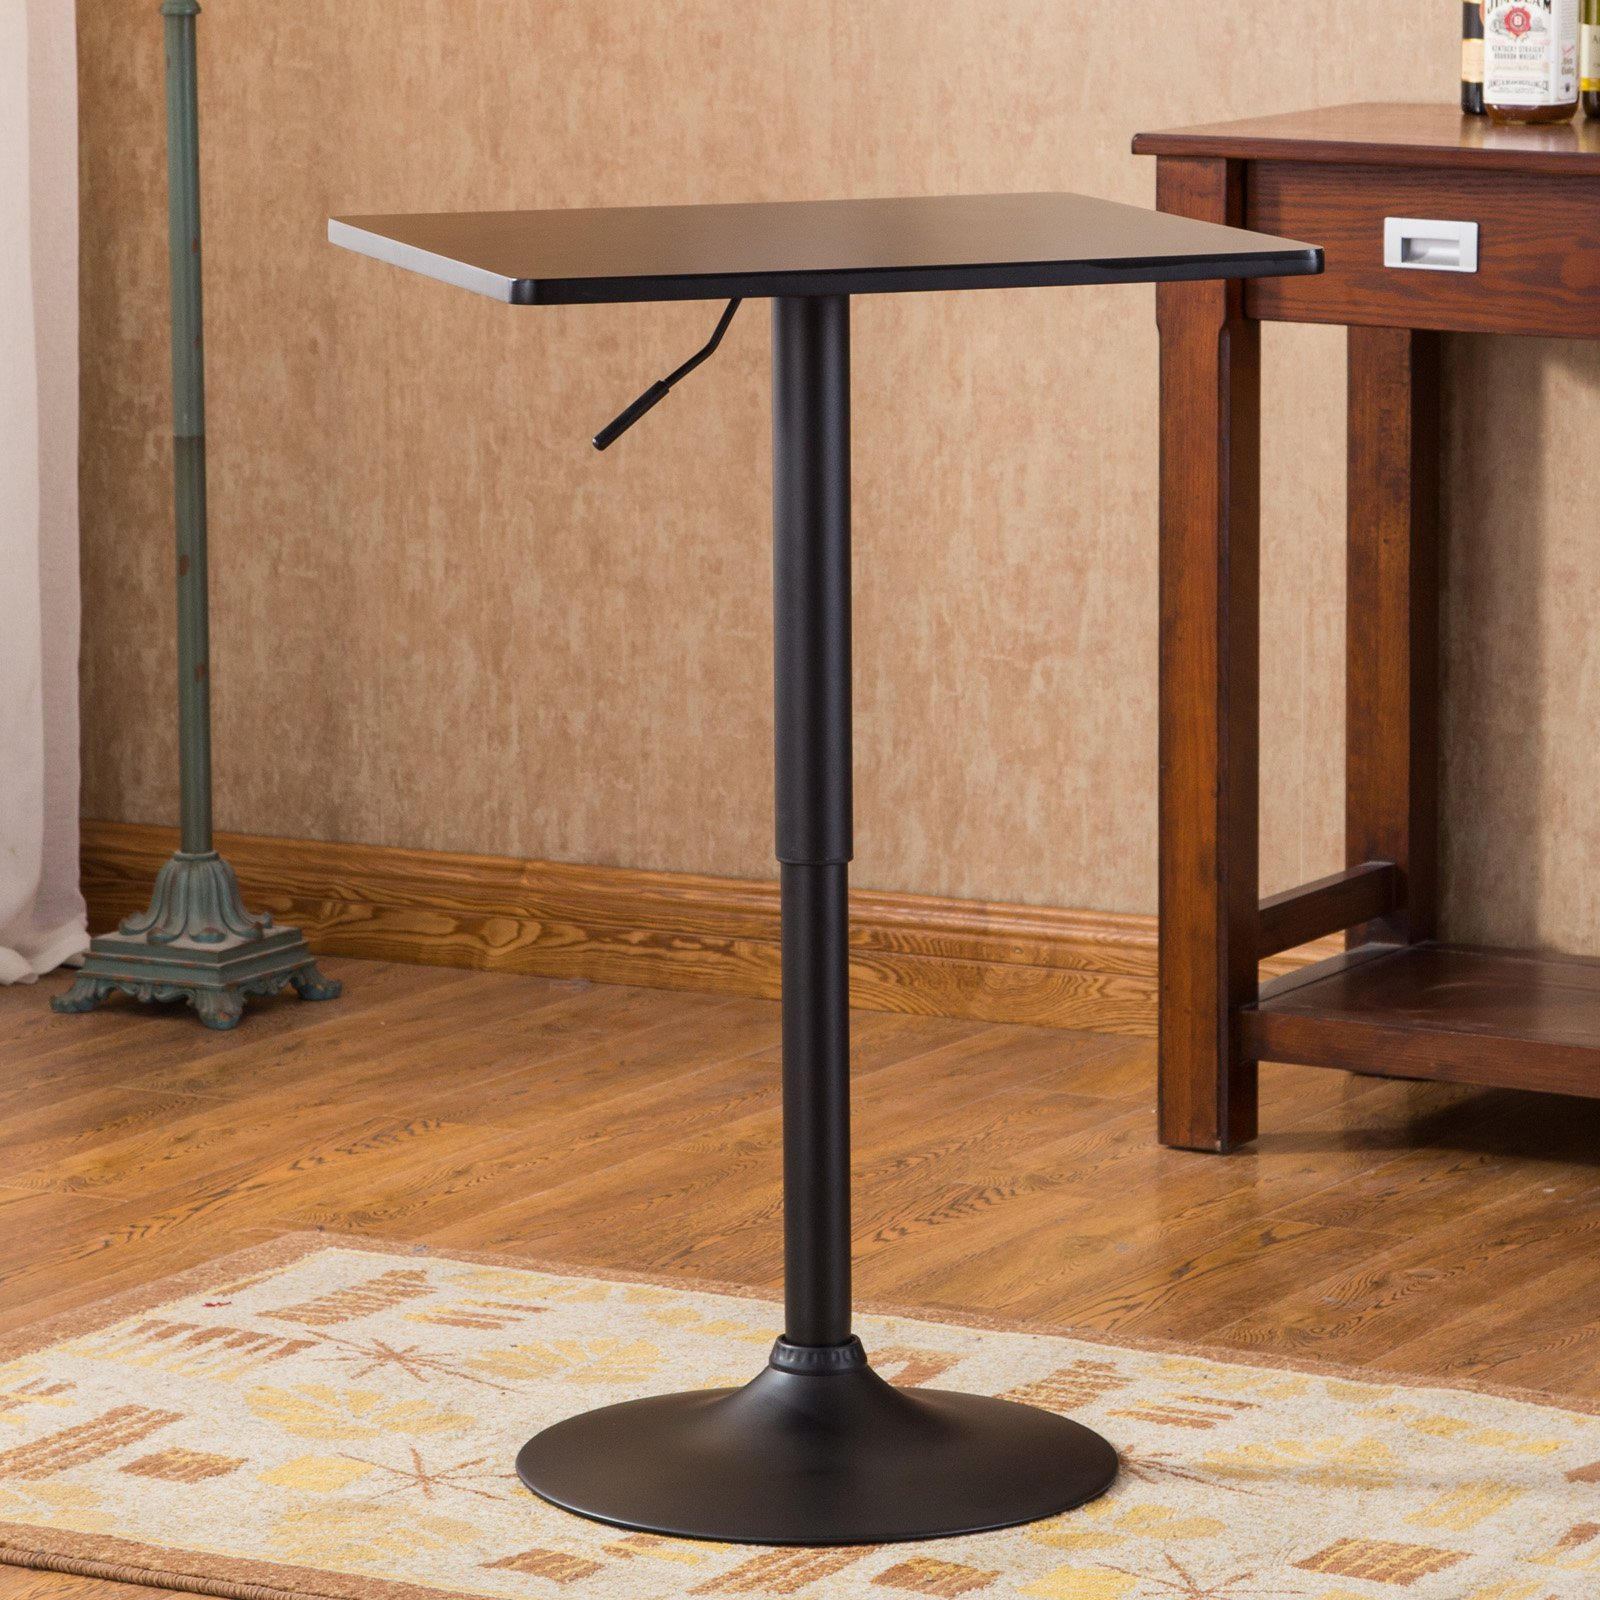 Roundhill Furniture Belham Square Top Adjustable Height with Black Leg and Base Metal Bar Table